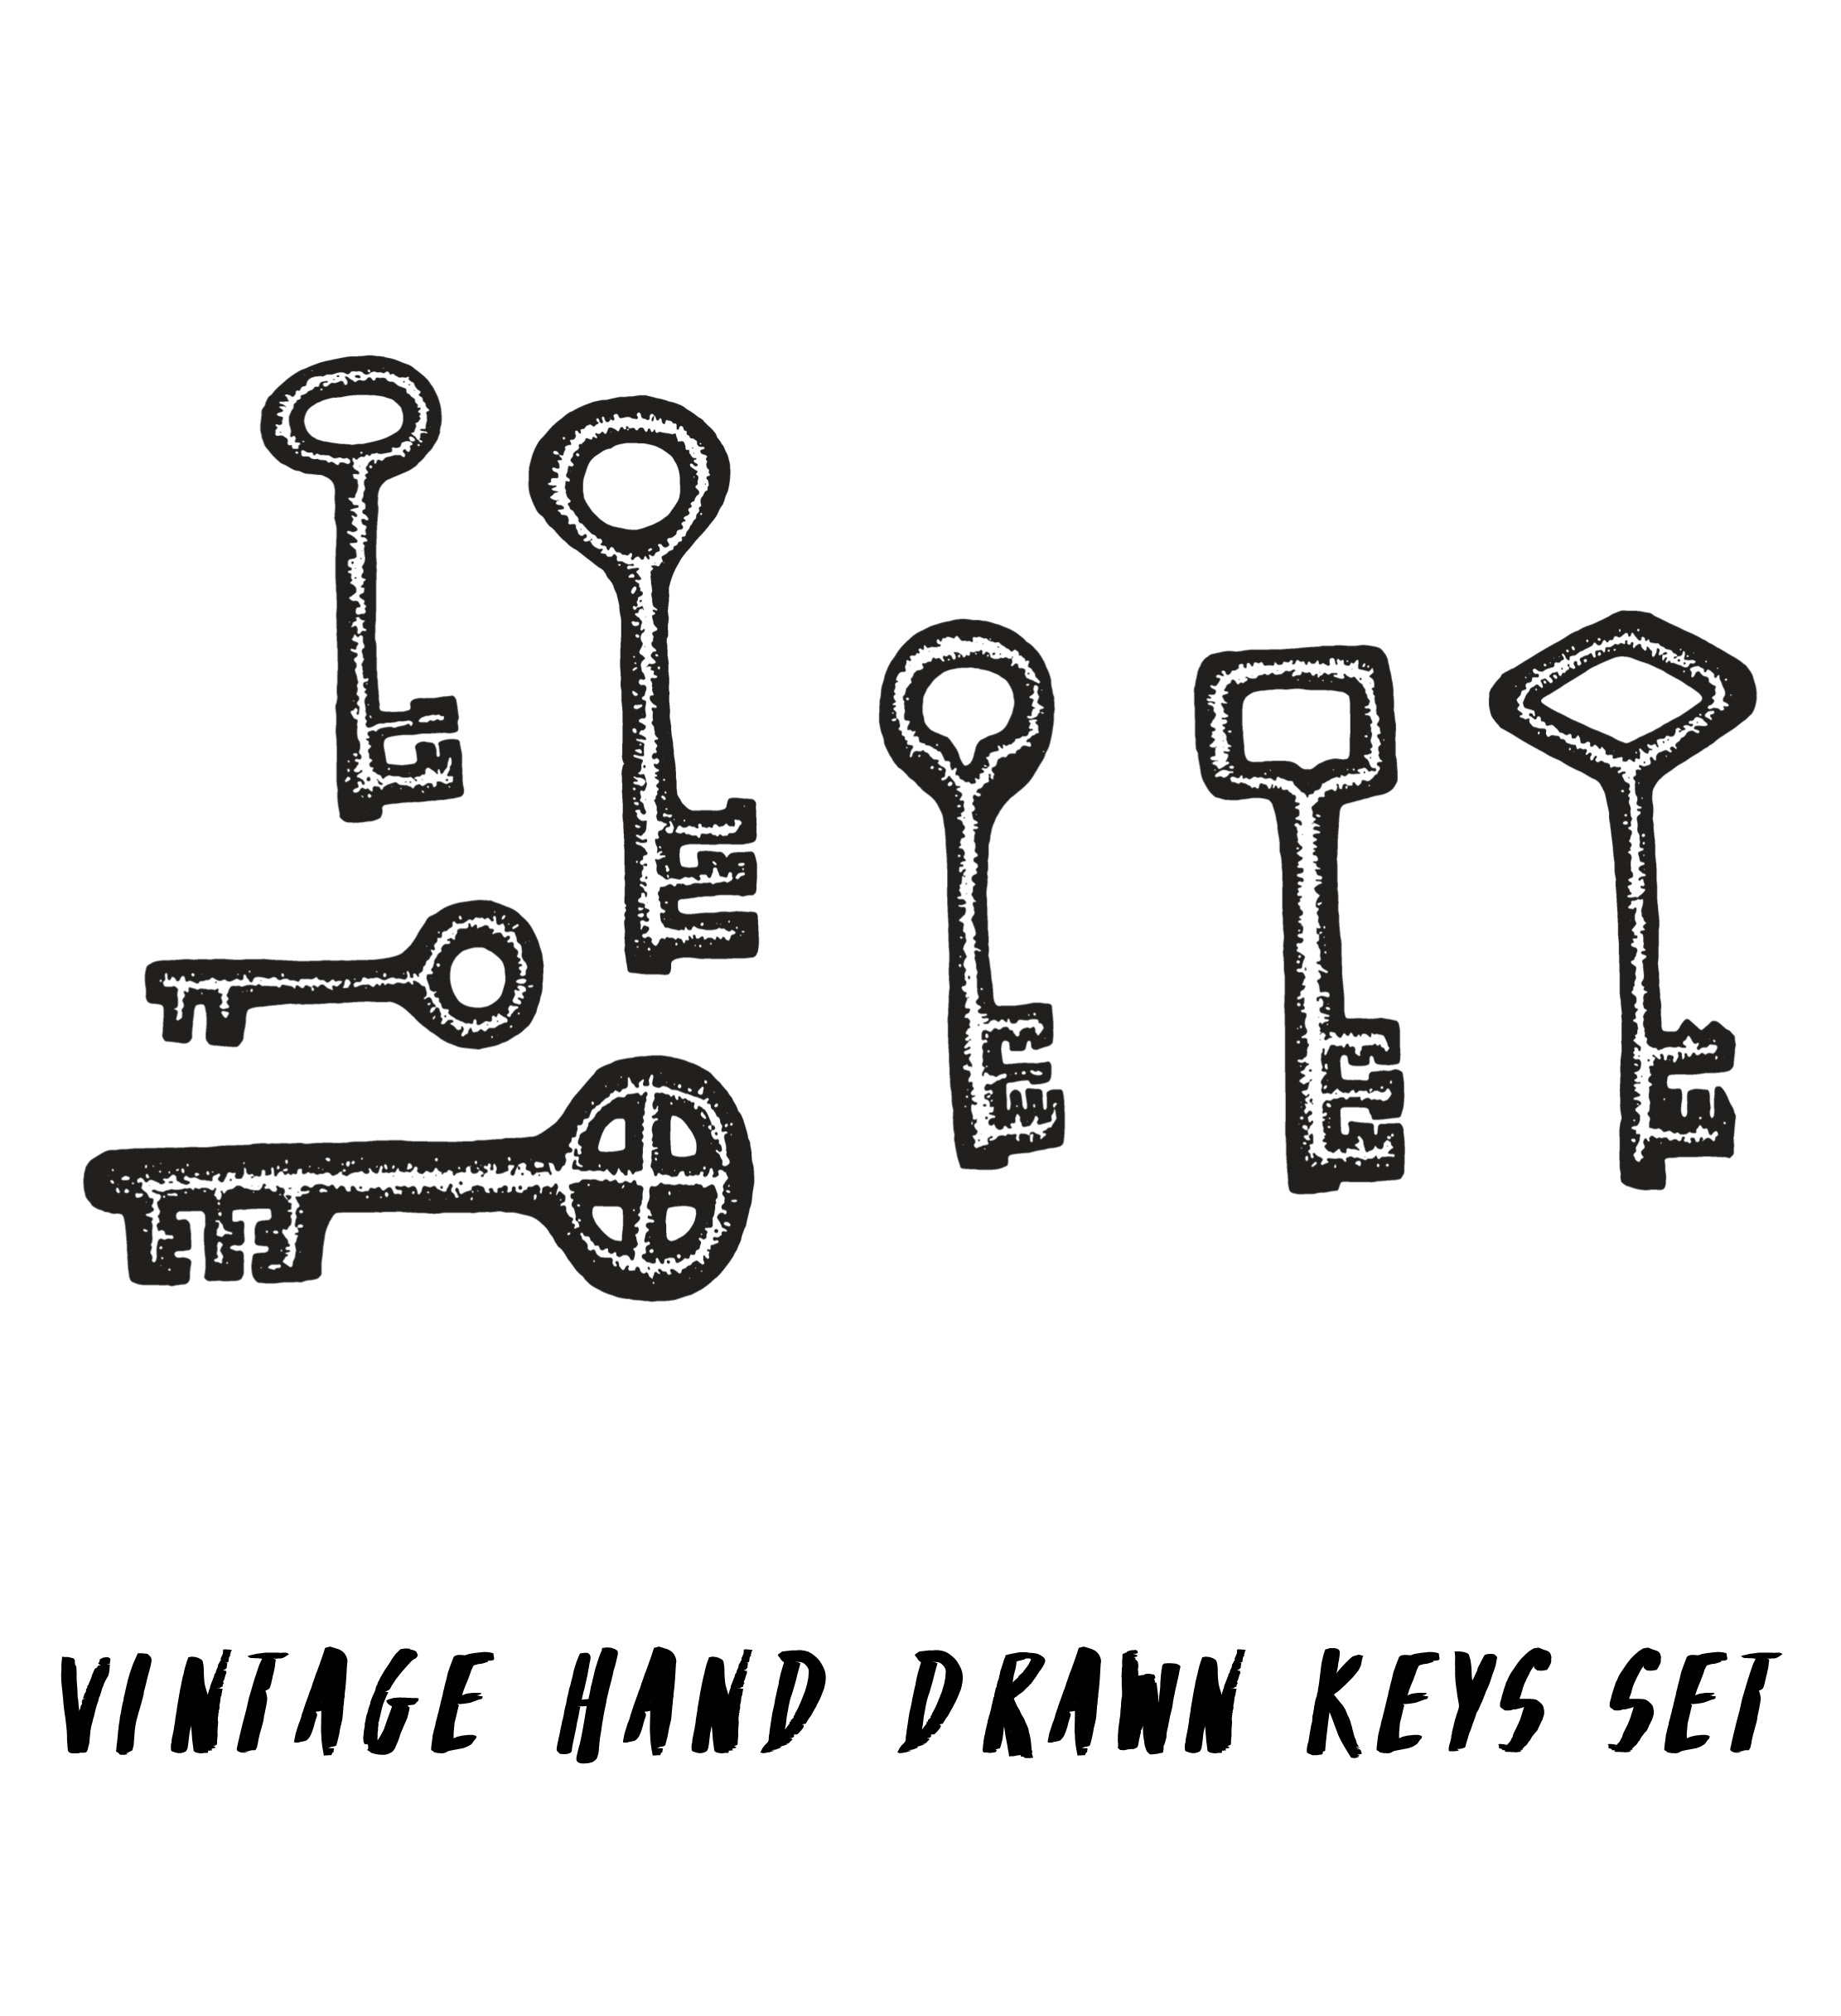 Hand drawn keys set